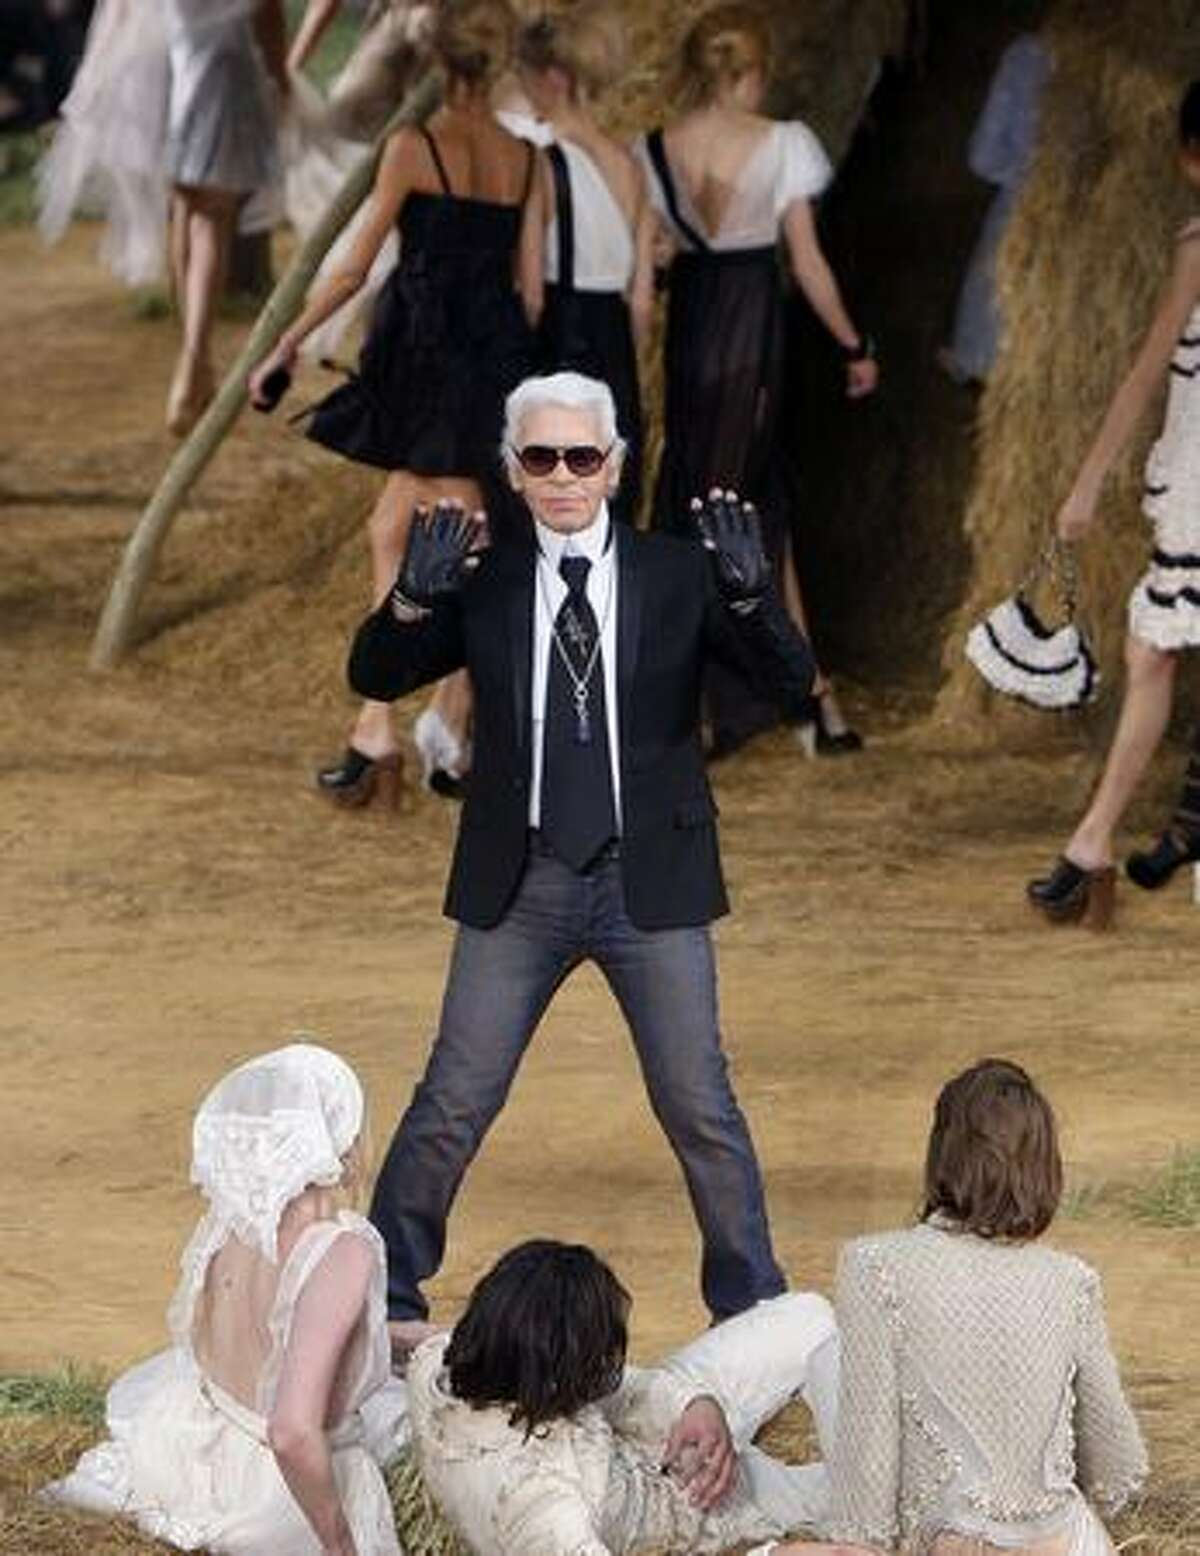 German designer Karl Lagerfeld at the end of his ready-to-wear spring/summer 2010 fashion show for Chanel on Tuesday, Oct. 6, 2009 in Paris.